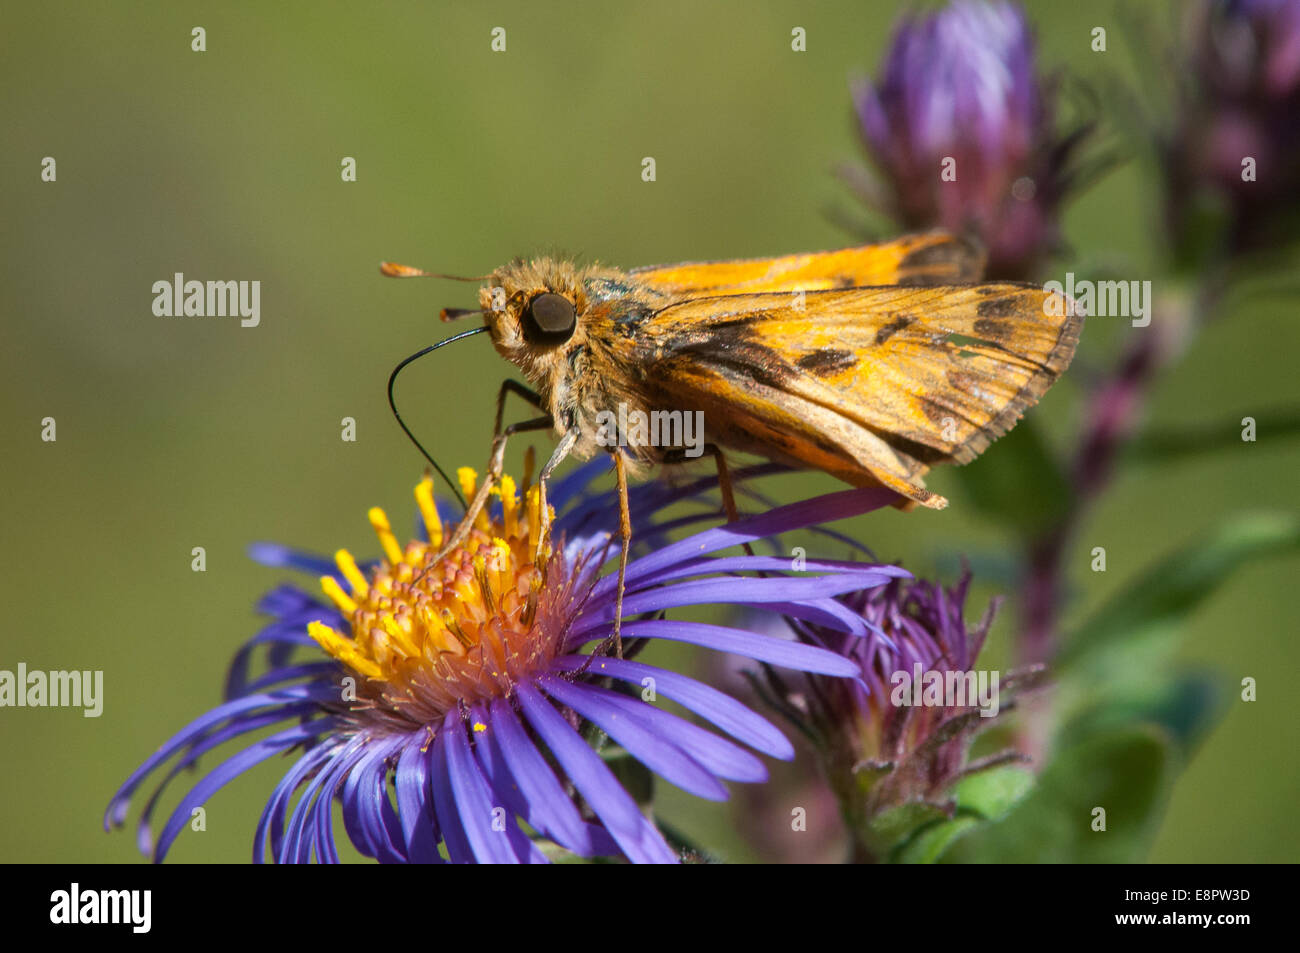 Fiery Skipper feeding on nectar. - Stock Image